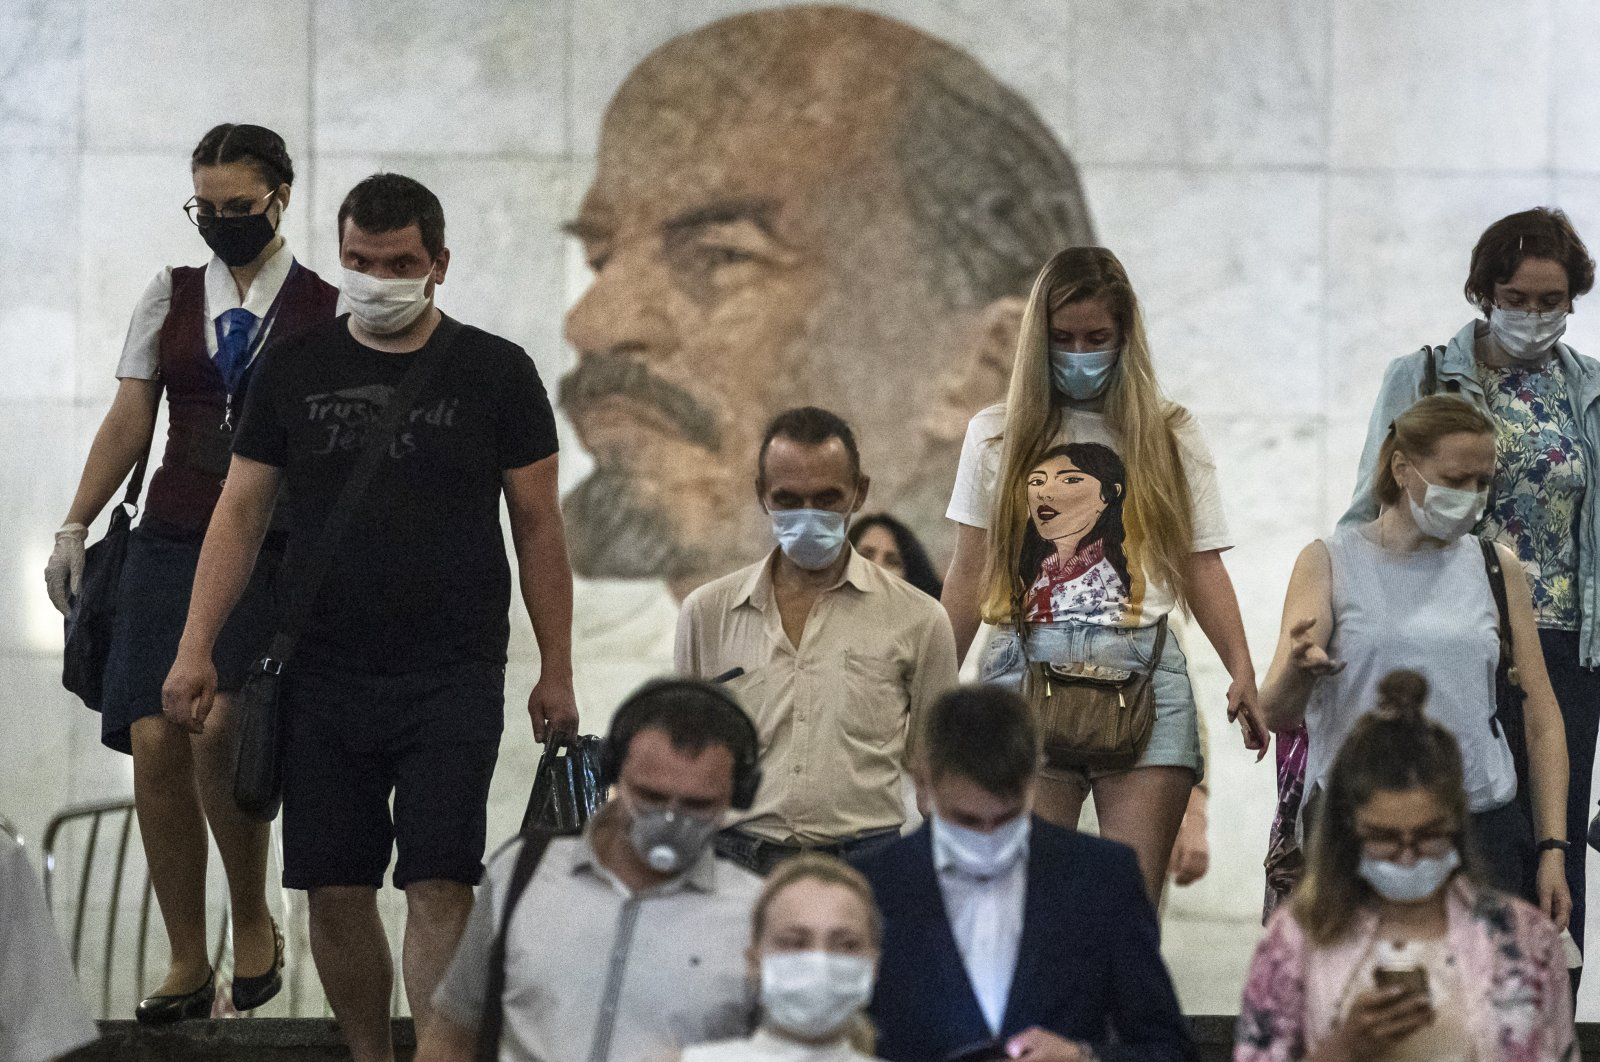 People wearing face masks to protect against coronavirus walk through the subway, with a portrait of Soviet founder Vladimir Lenin in the background, in Moscow, Russia, June 10, 2020. (AP Photo)